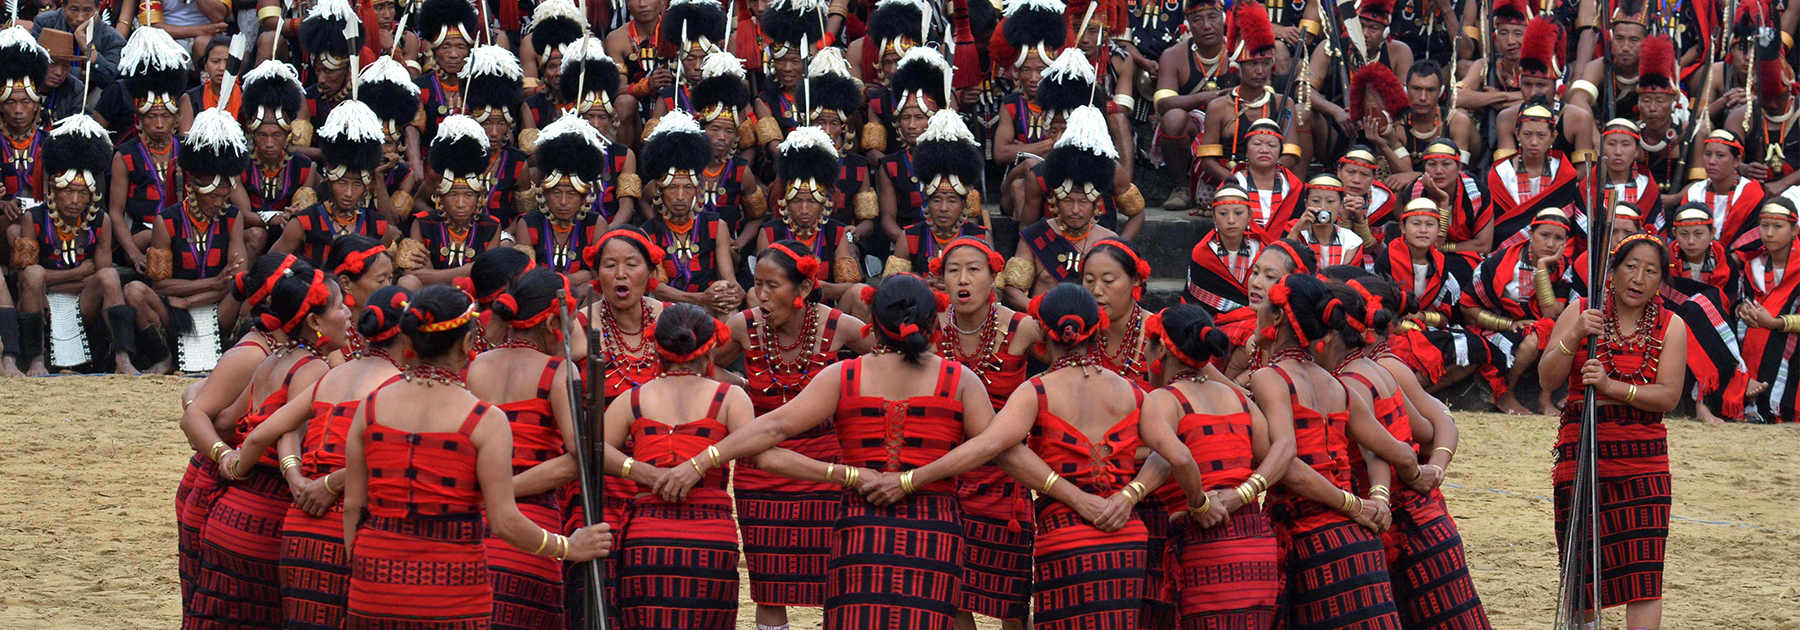 Members of the Naga tribe look on during the annual Hornbill Festival at Kisama village. (CHANDAN KHANNA/AFP/Getty Images)